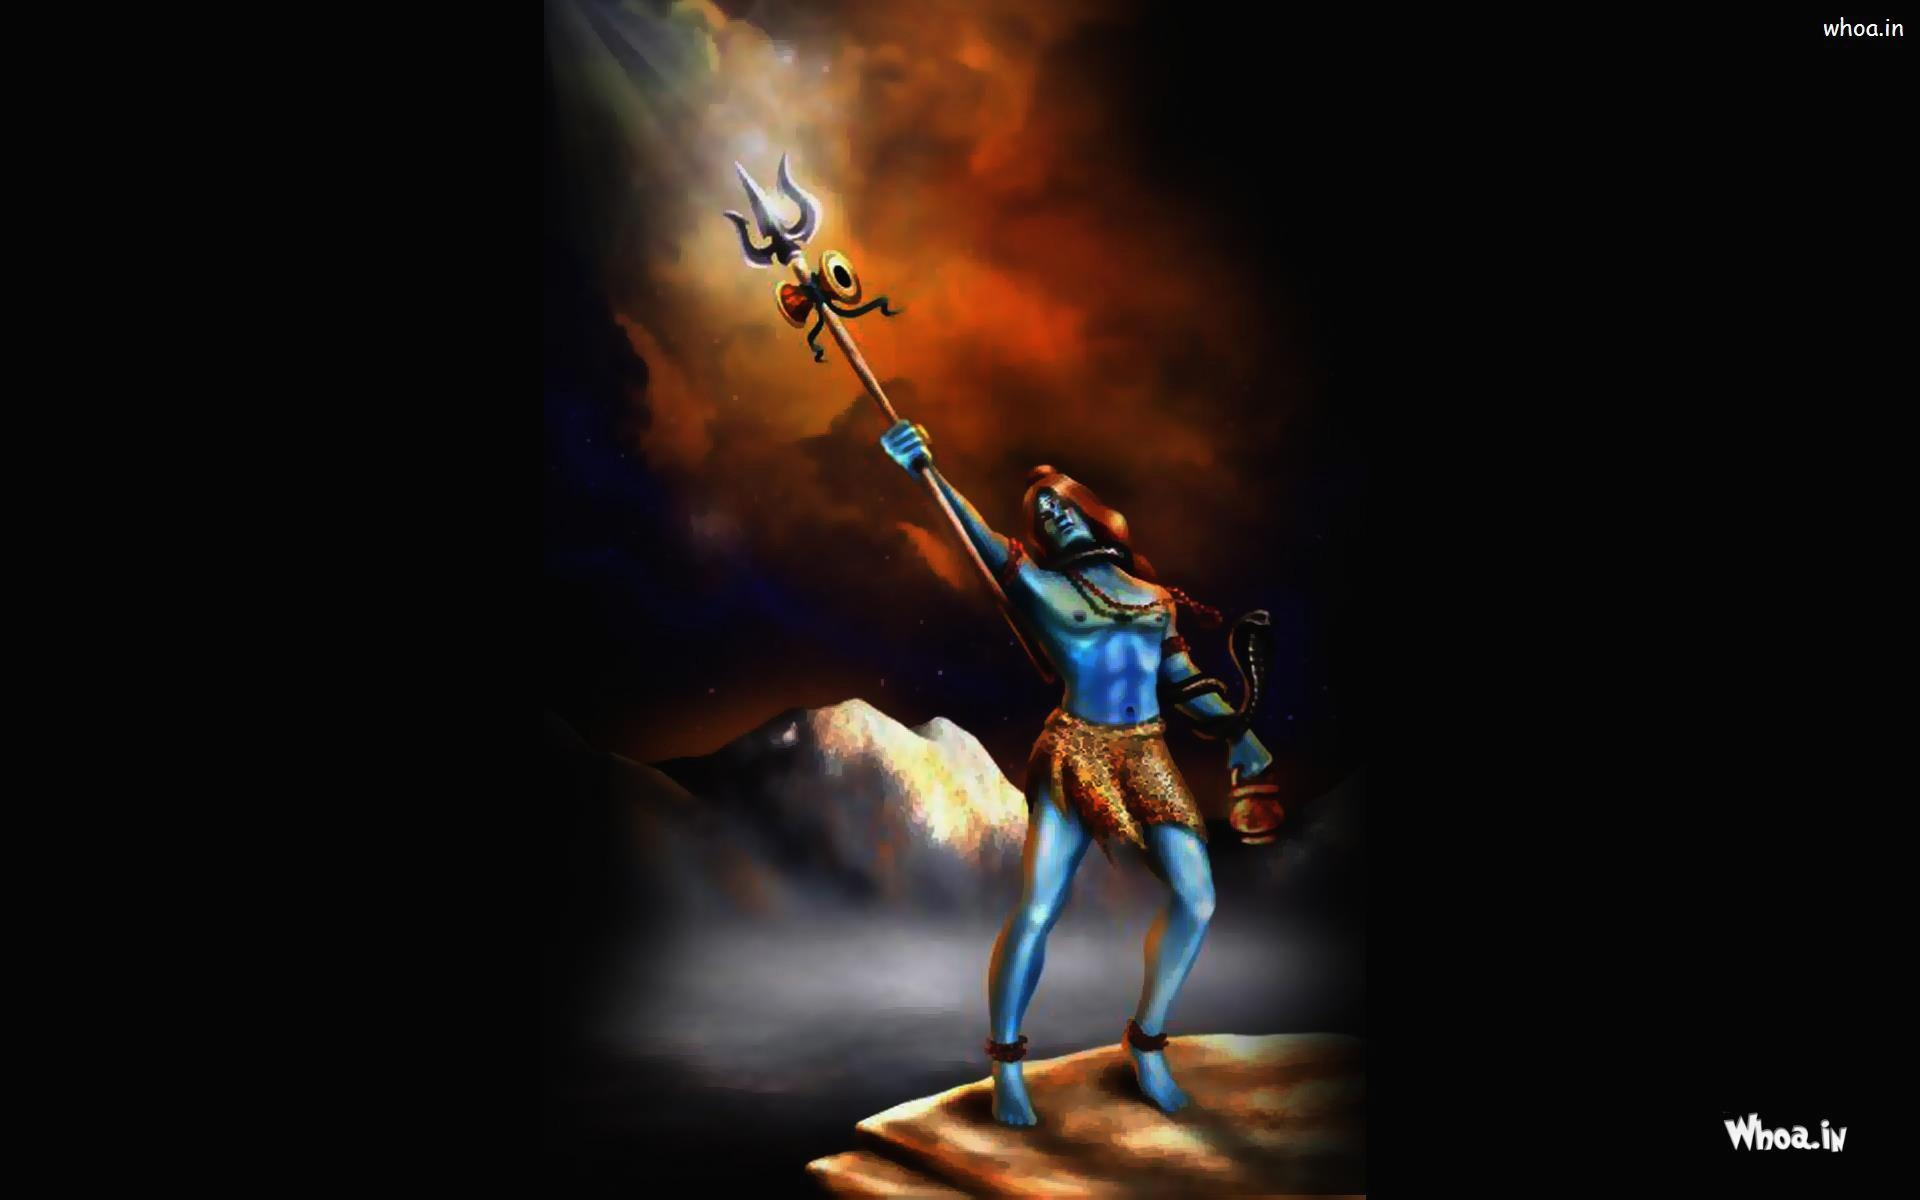 angry lord shiva wallpapers wallpaper cave angry lord shiva wallpapers wallpaper